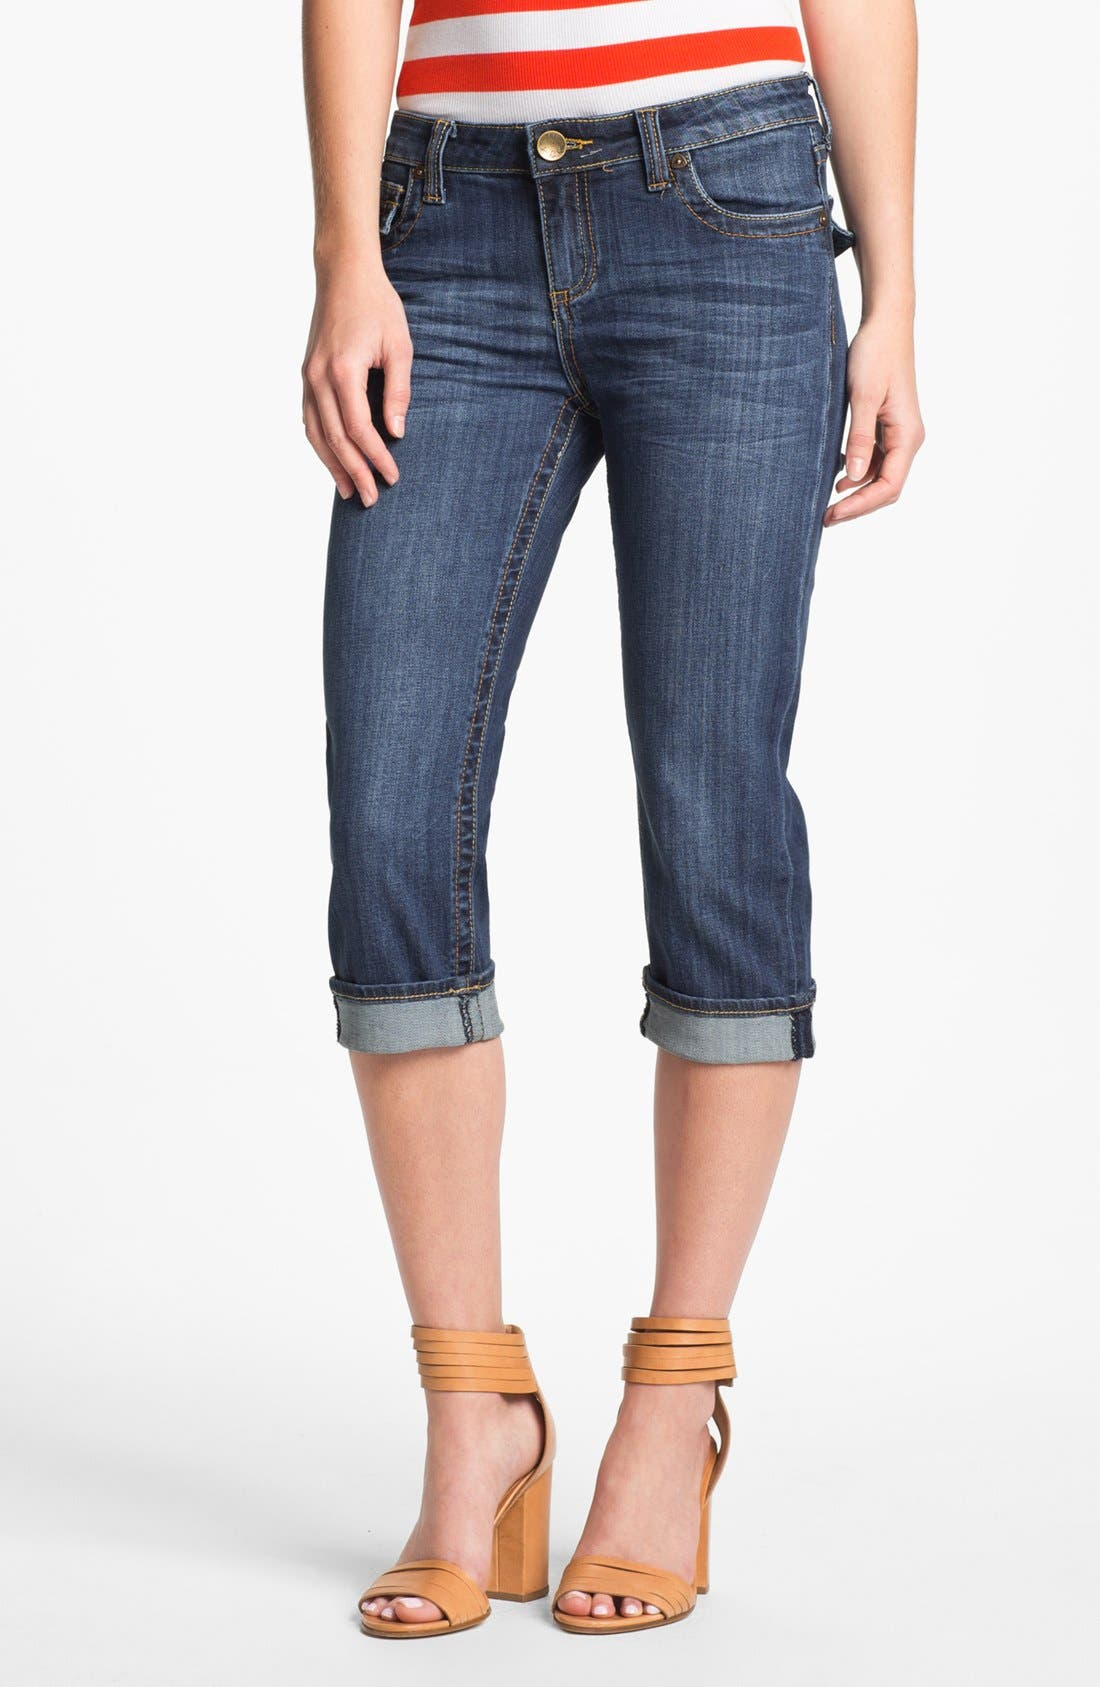 Alternate Image 1 Selected - KUT from the Kloth 'Natalie' Crop Jeans